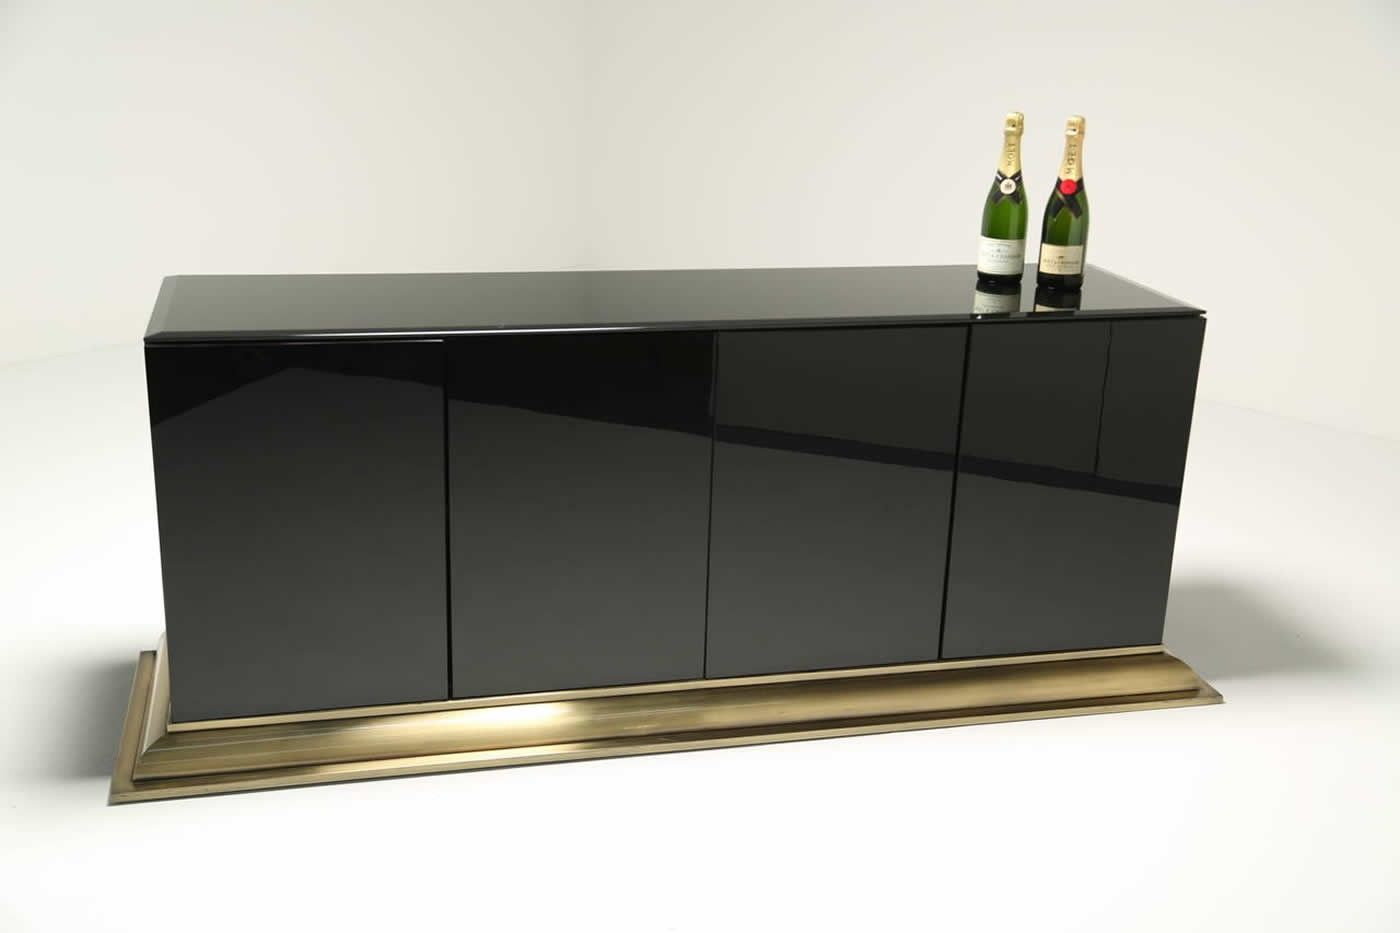 sideboard aus messing und schwarzem glas von ello. Black Bedroom Furniture Sets. Home Design Ideas